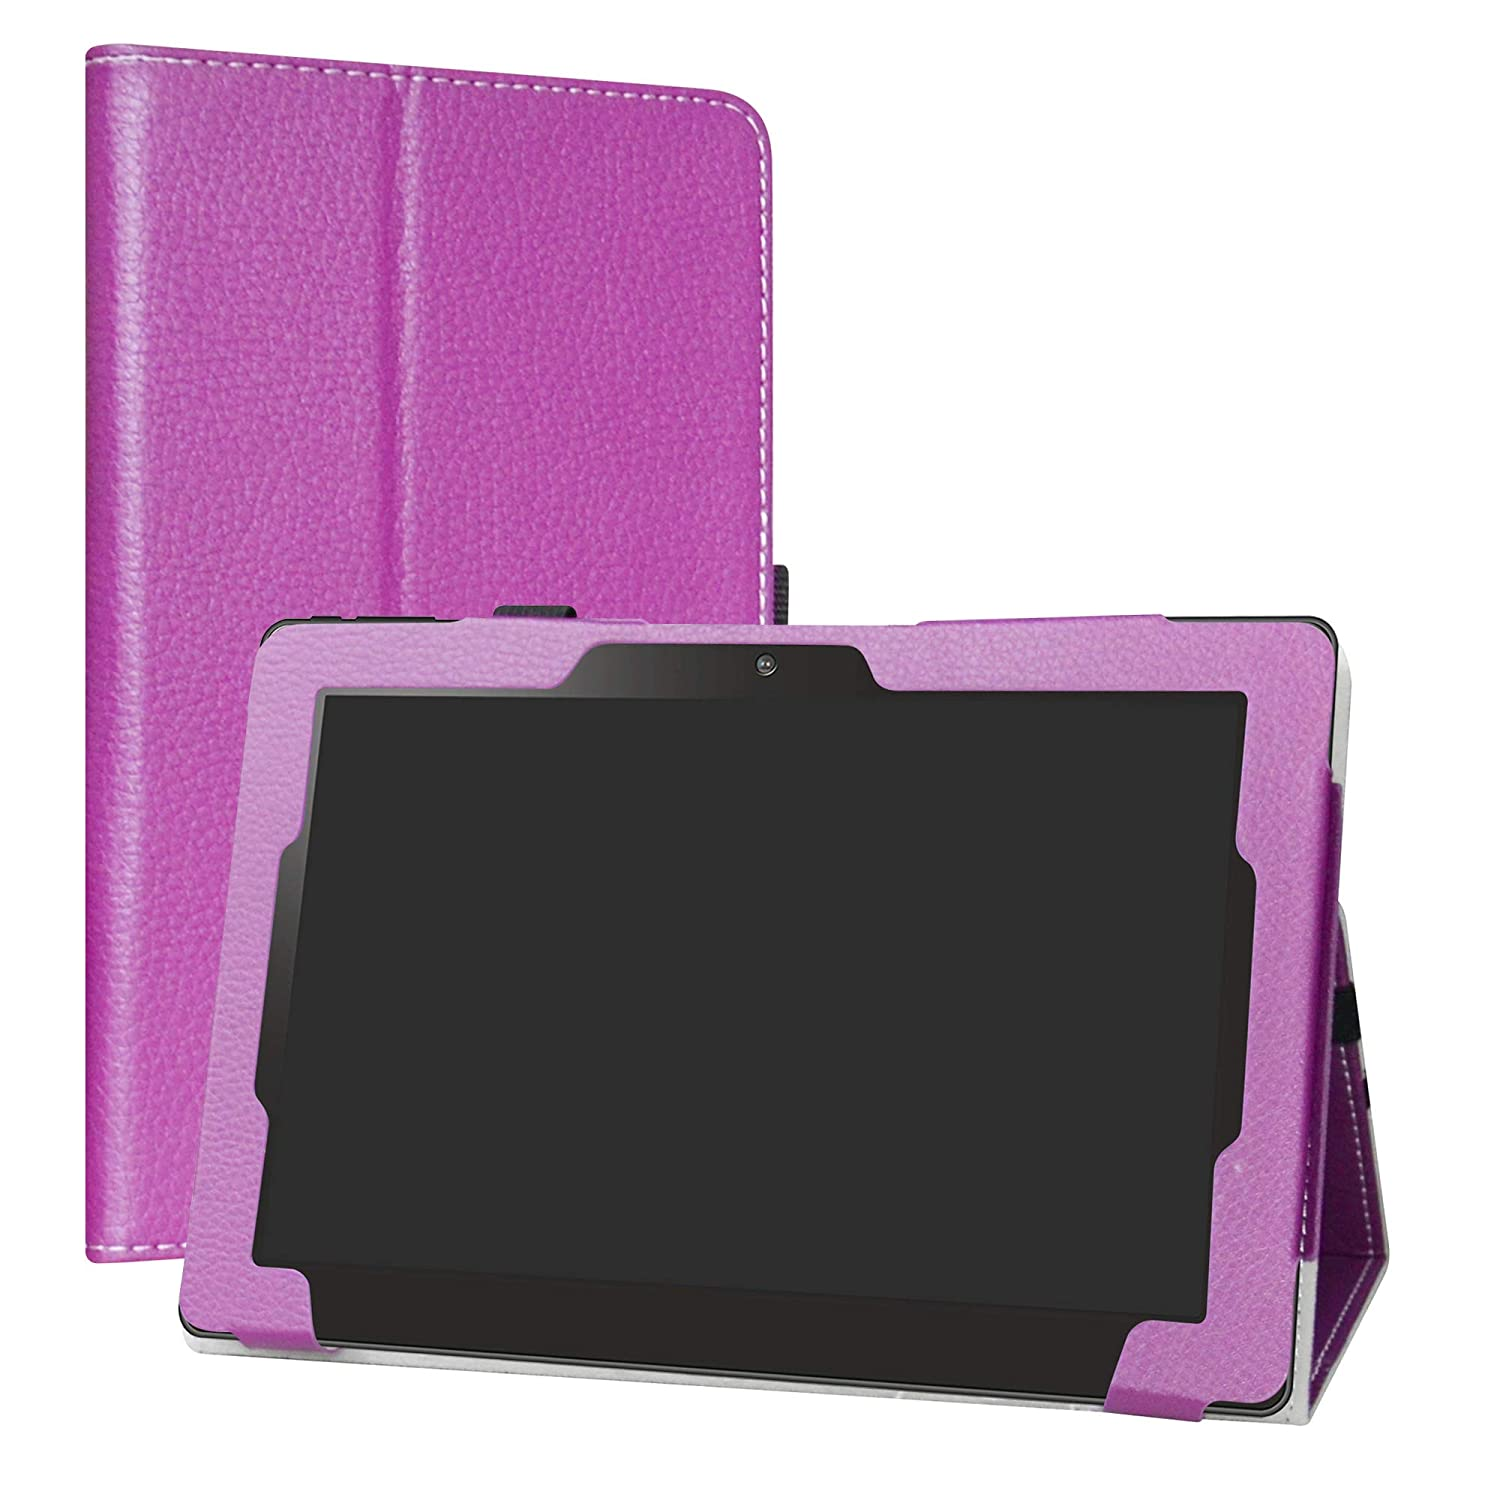 Purple Zaith 10.1 inch 2in1 Case,Labanema Stand Folio Case Cover for Zaith 10.1 inch 2in1 Tablet